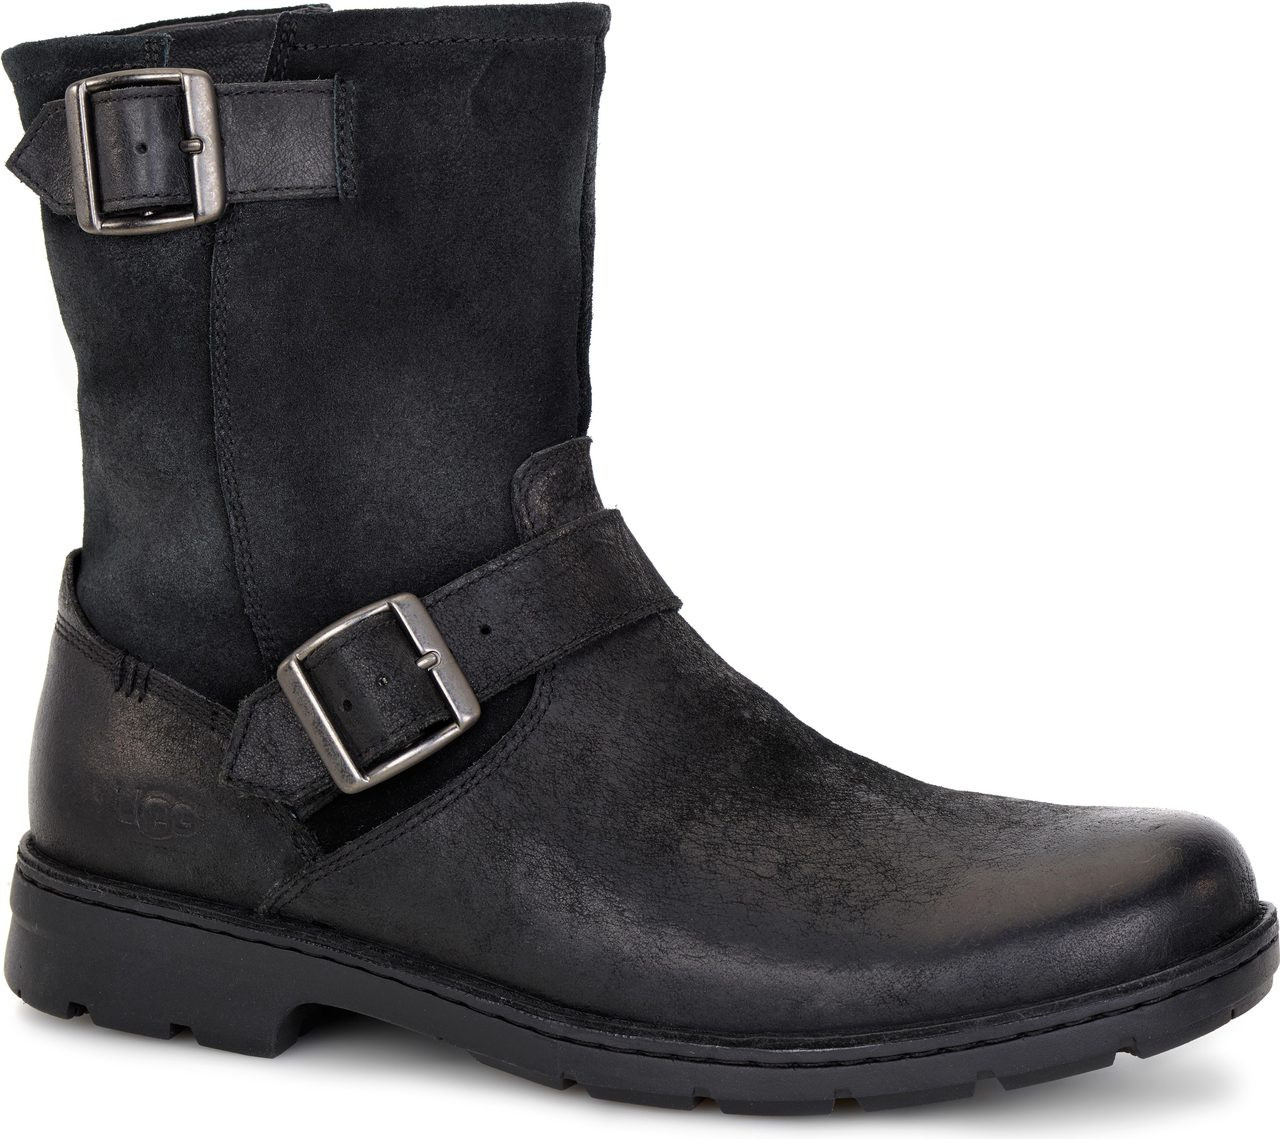 new style of 2019 professional newest style of UGG Australia Men's Messner